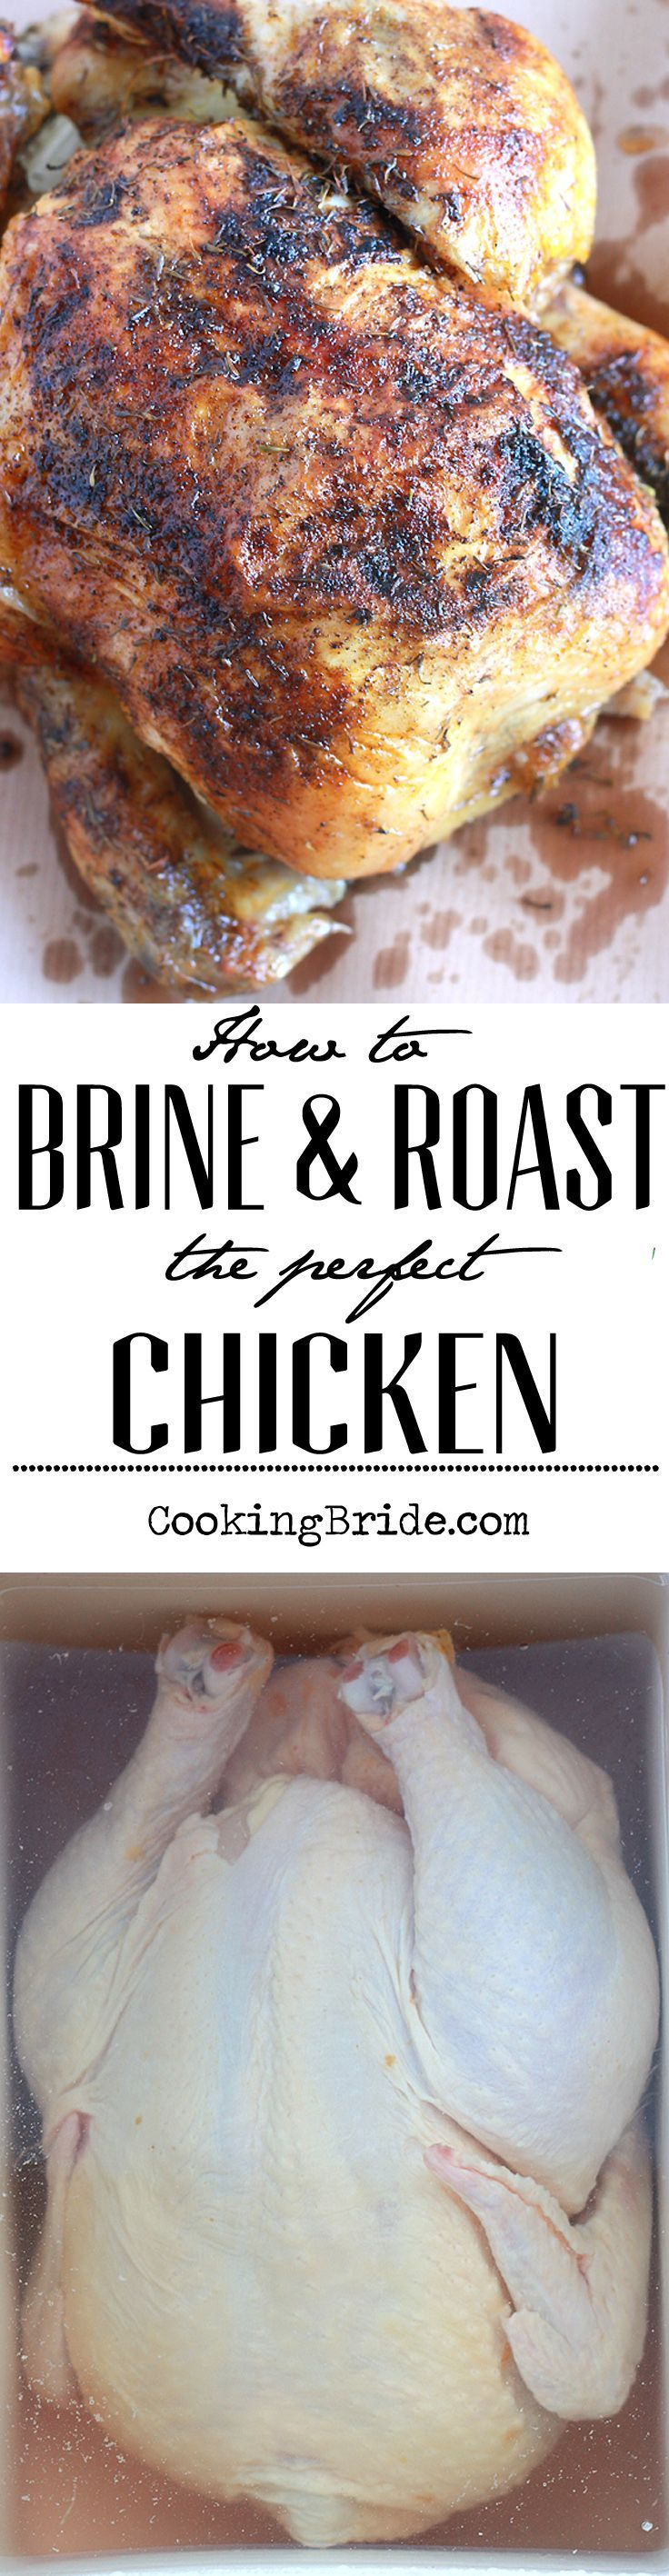 Tips and tricks for brining and roasting the perfect chicken.